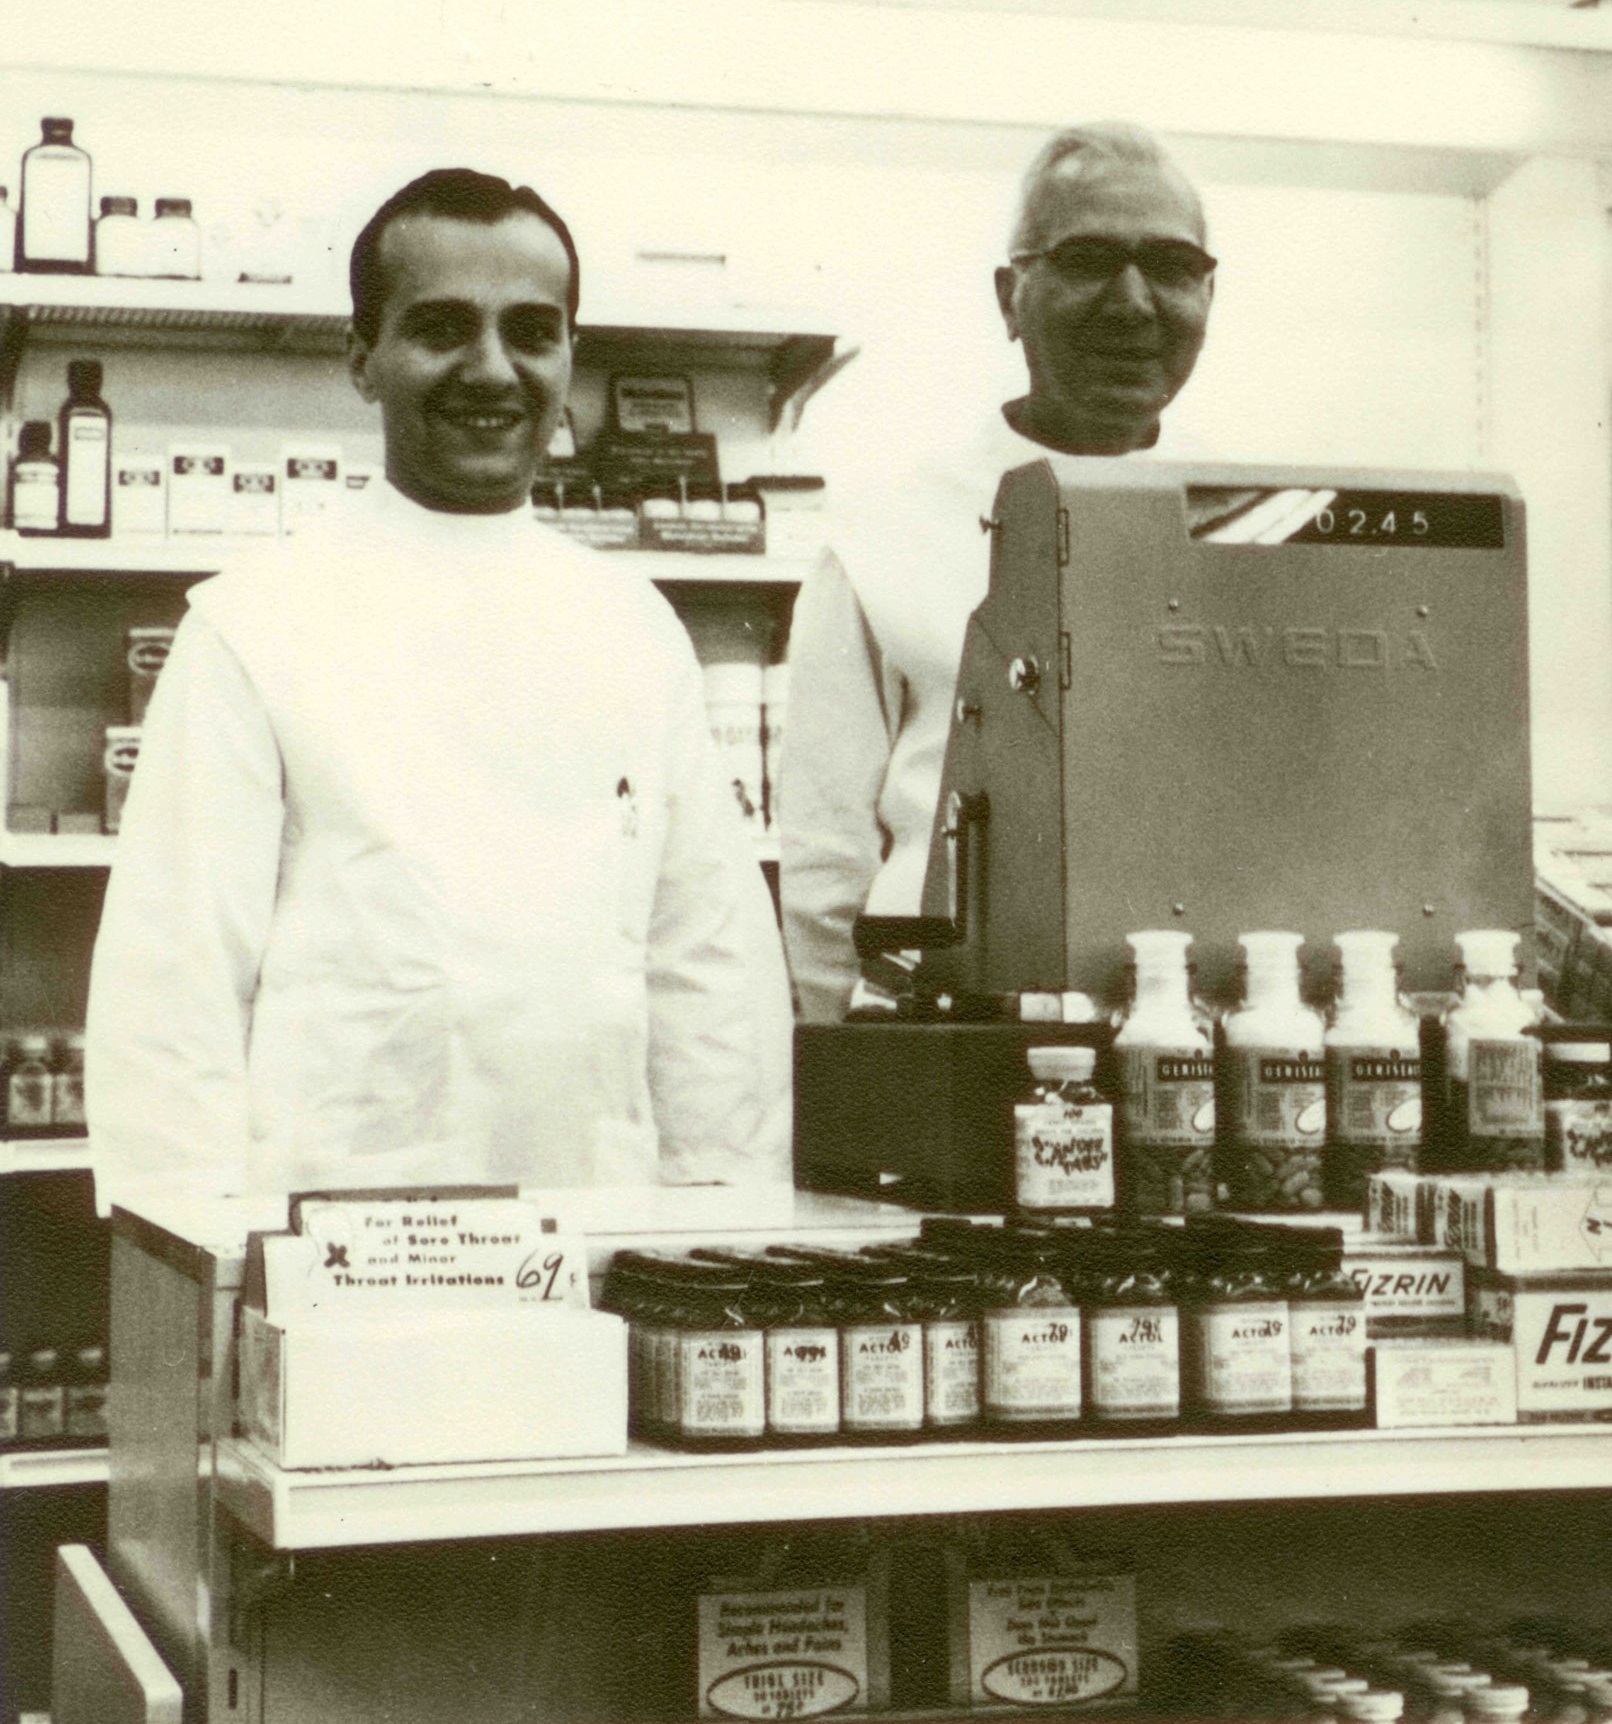 Henry Panasci Jr., and his father, Henry Panasci Sr., behind the counter at the first Fay's Drug Store in Syracuse, New York, in 1958.